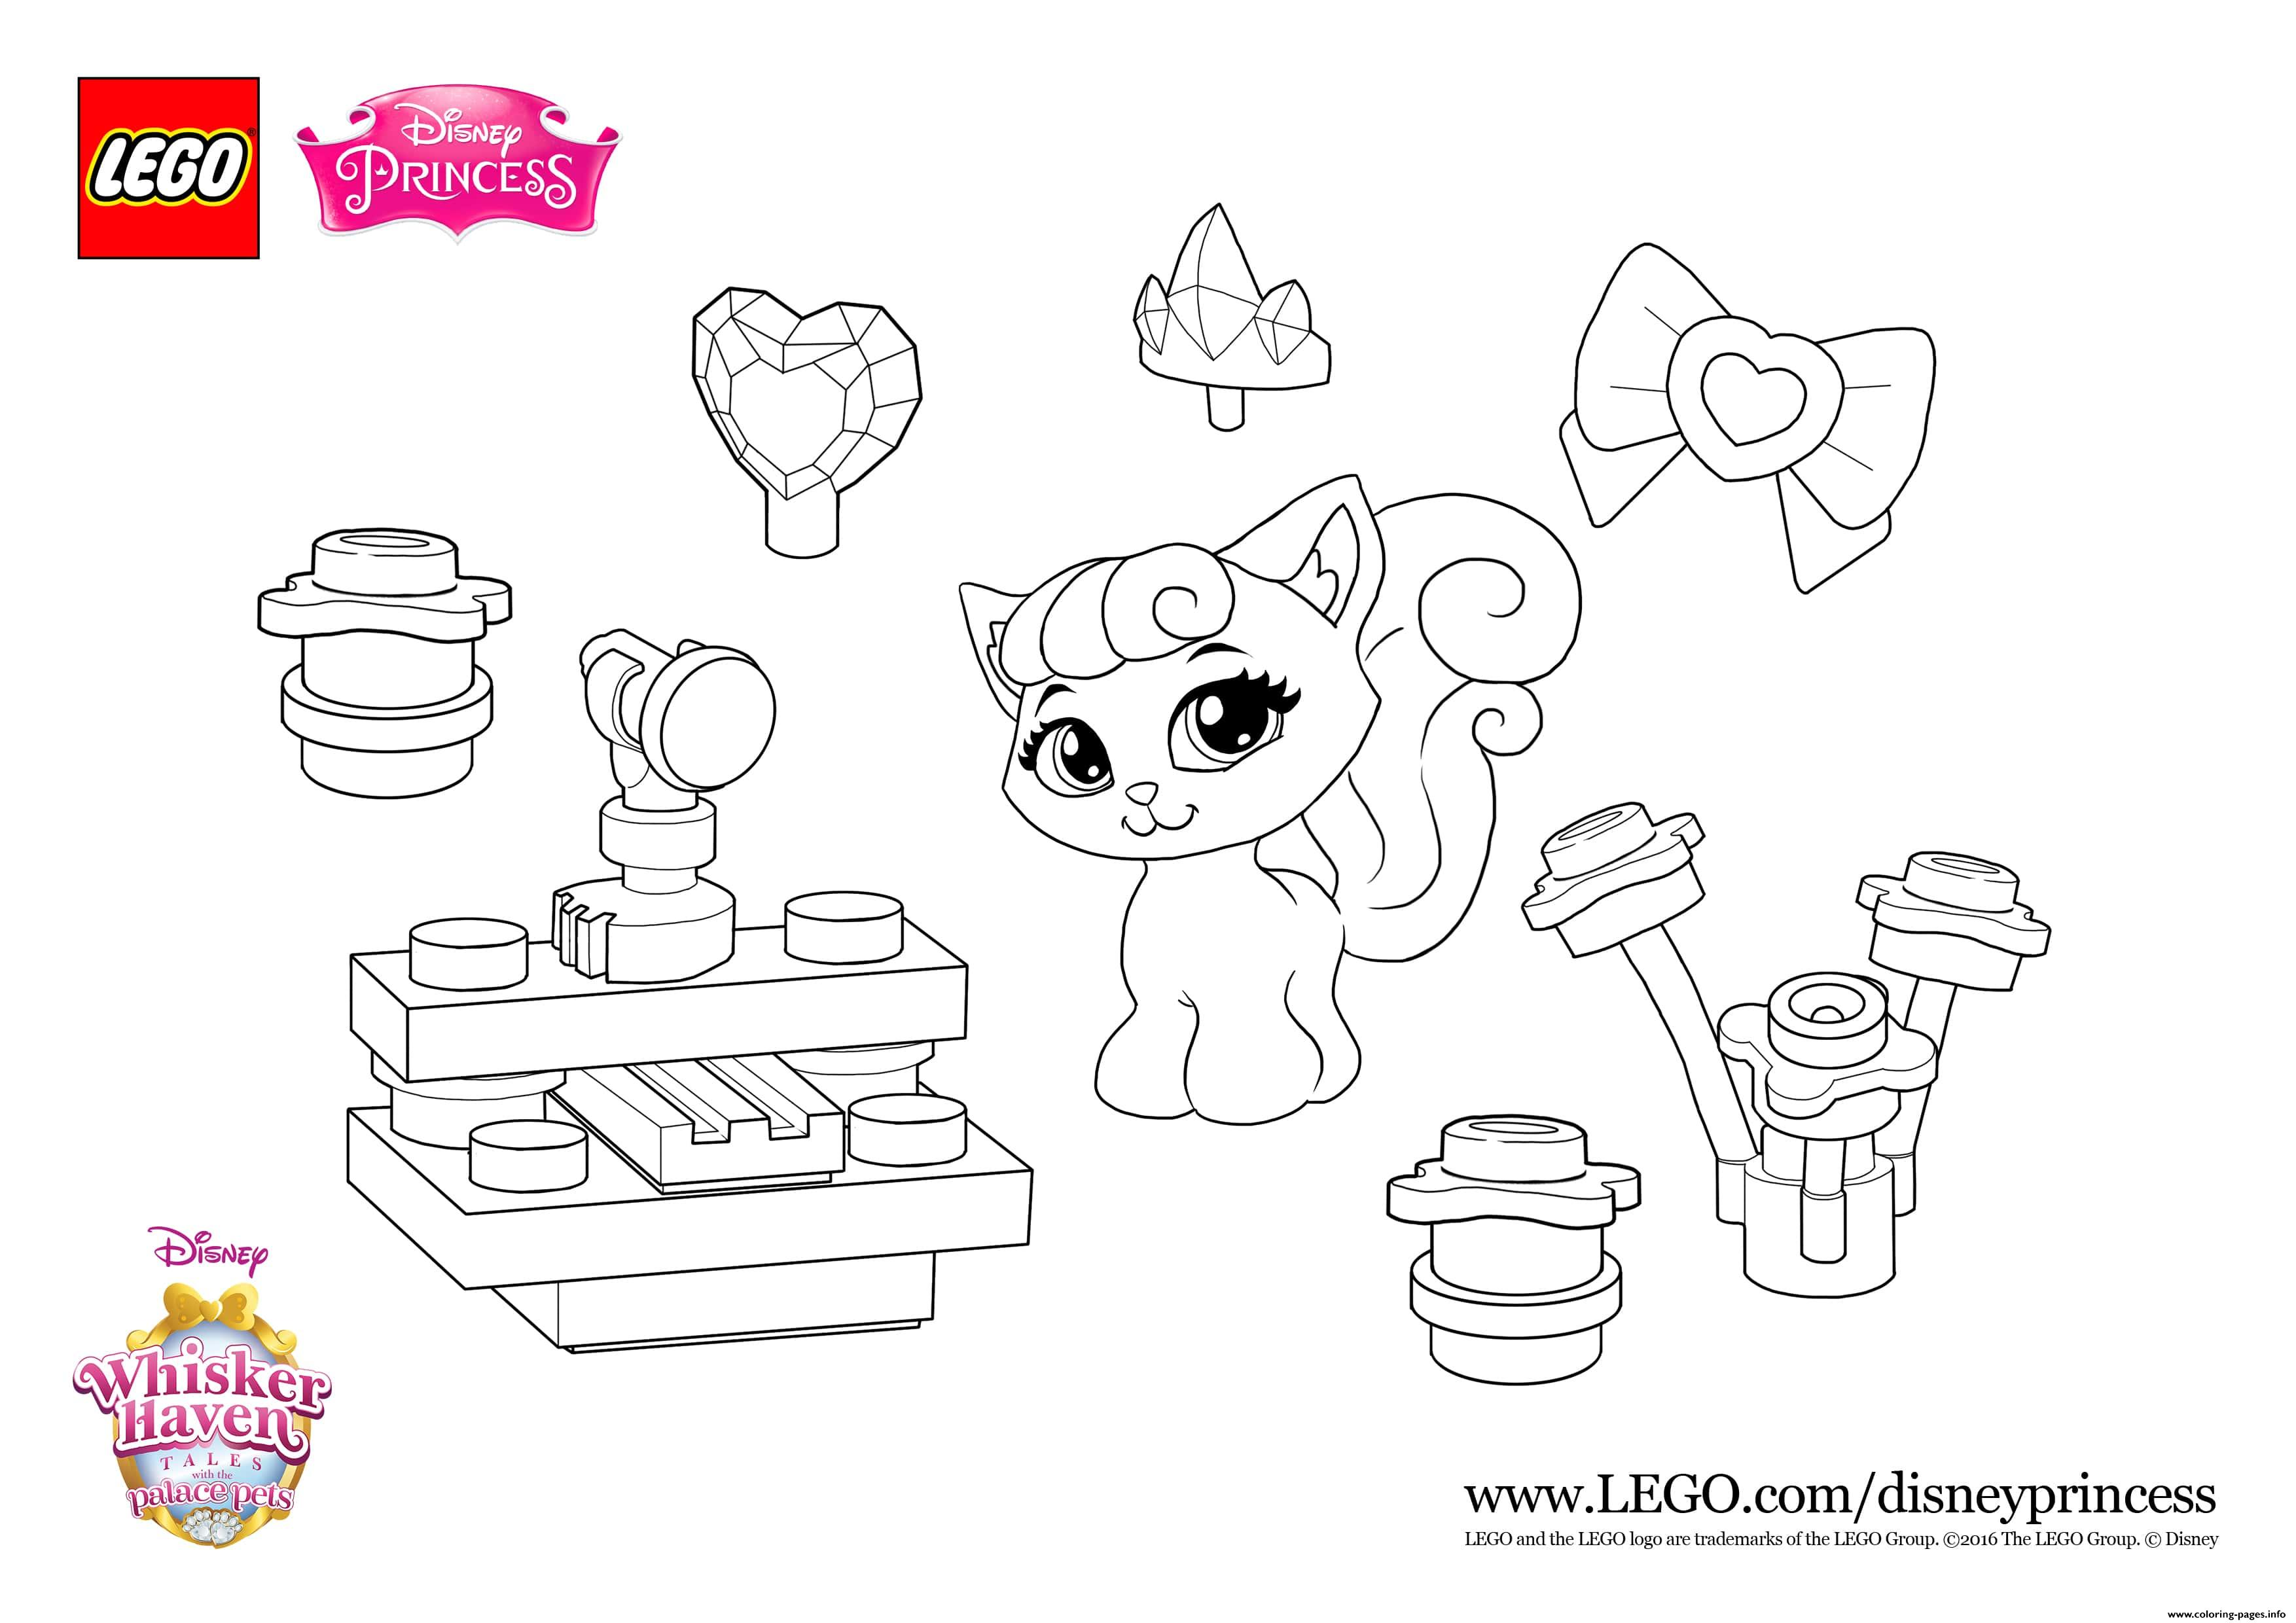 Ac Dcd Eee B Ba A Wolf Coloring further Journal Page Coloring Pages X besides Ncbgkbjbi further D D Fb Edd D C Fabedcf F Flower Coloring Pages Free Coloring Pages besides Oddbods. on printable coloring pages for adults